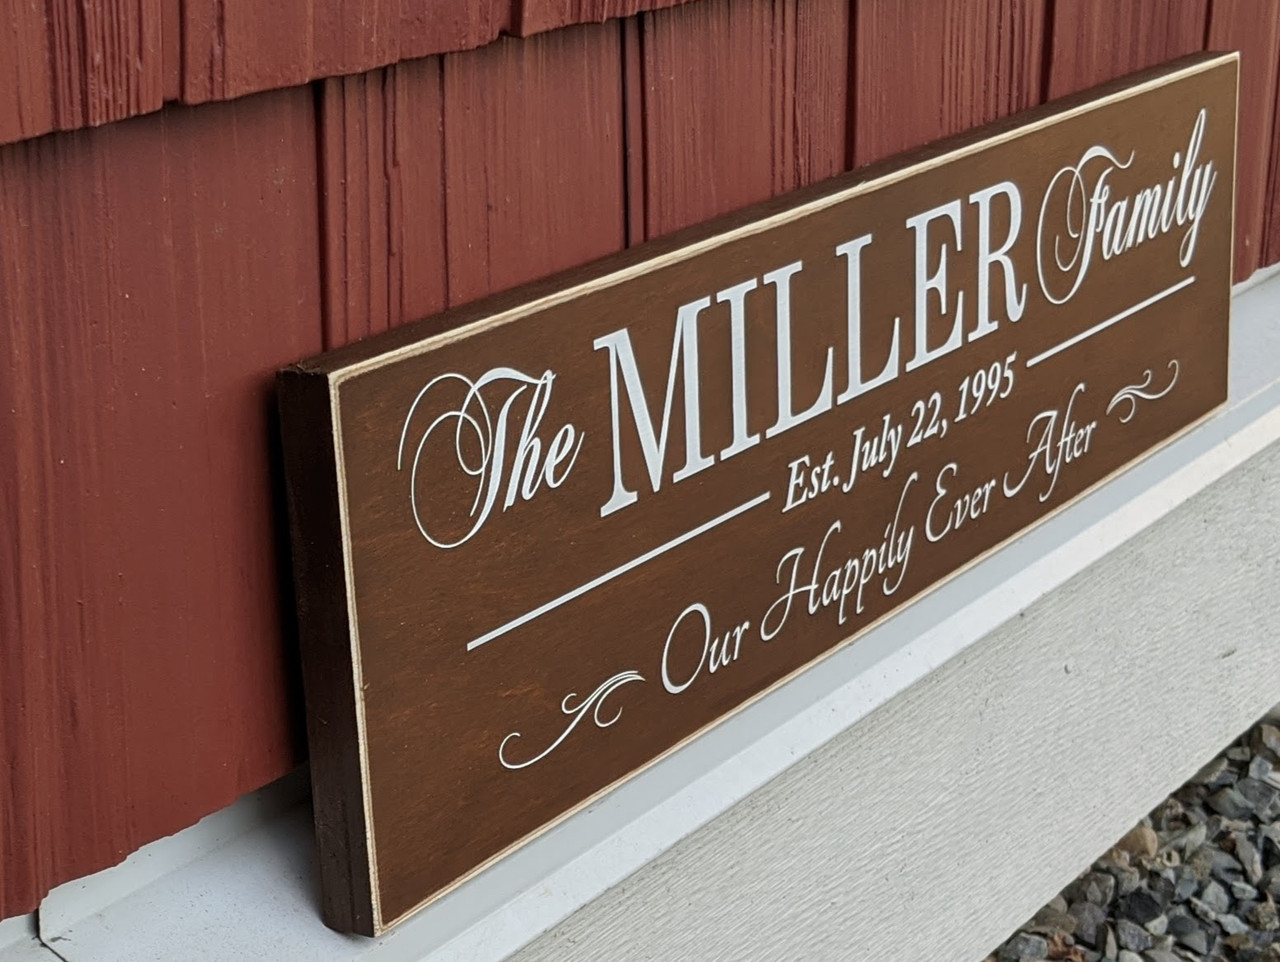 Our happily ever after personalized family sign